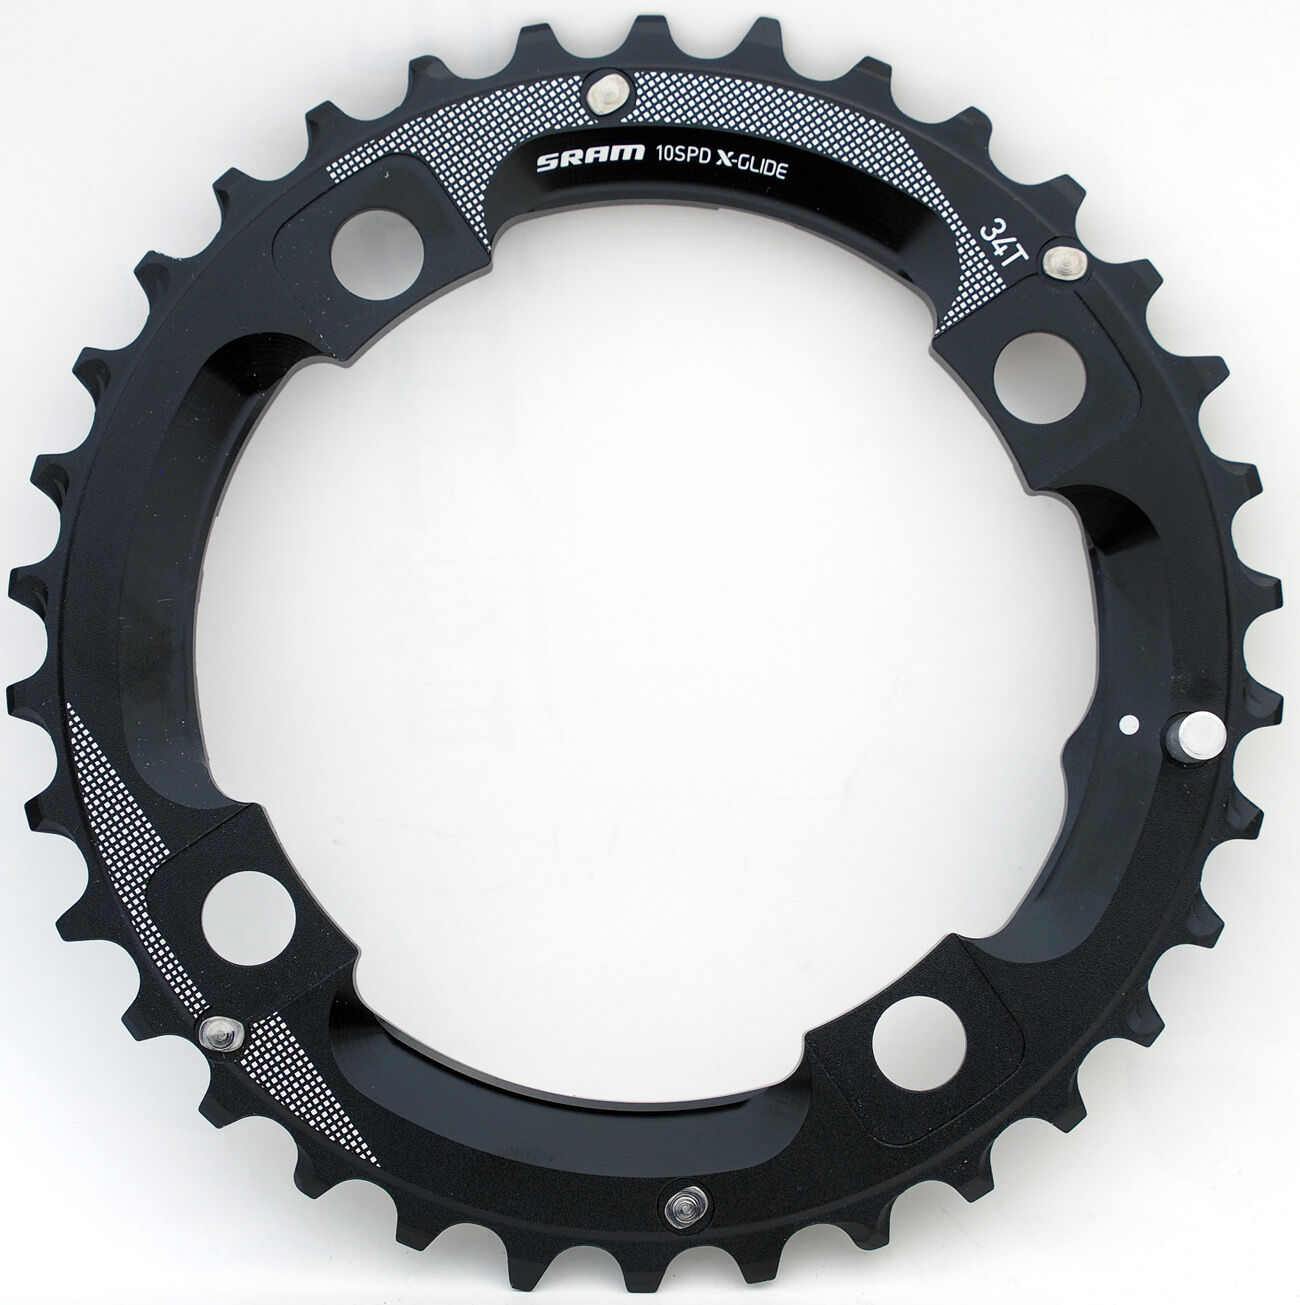 SRAM Truvativ MTB 2x10 speed 34T Chainring BCD 104mm, Medium Pin, New In Box